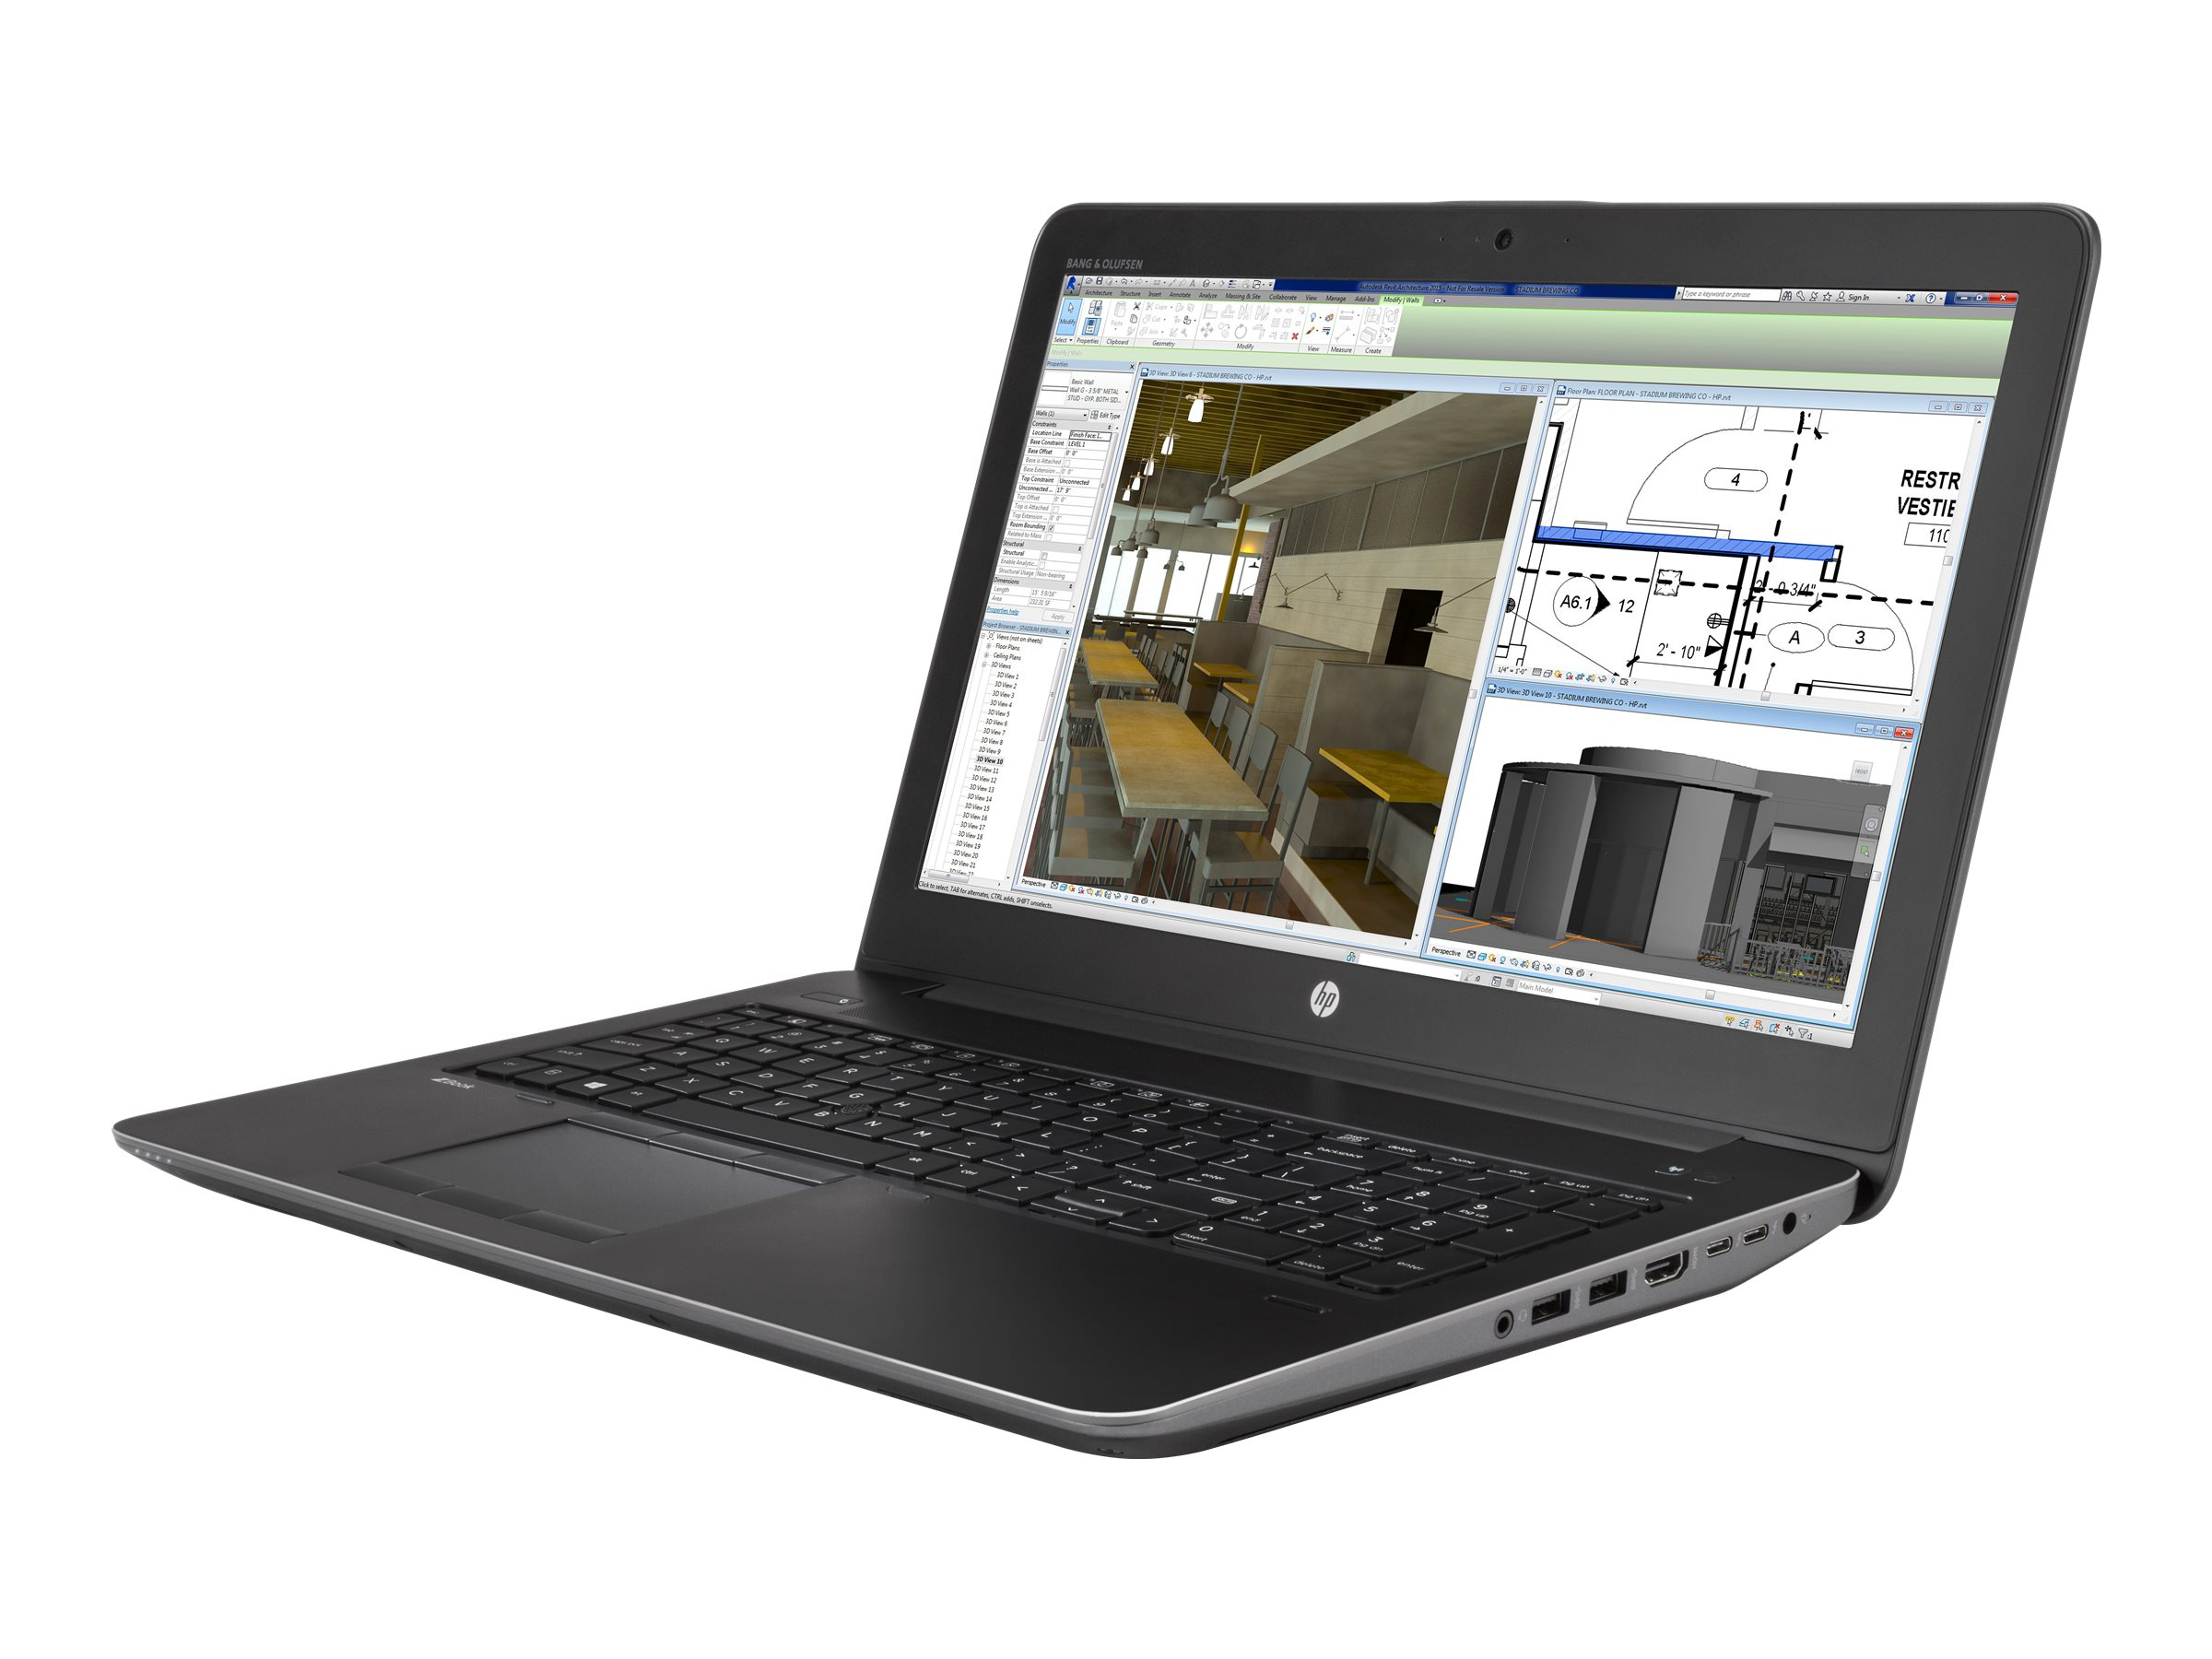 HP ZBook 15 G4 Core i7-7820HQ 2.9GHz 16GB 512GB SSD ac BT FR WC 9C M2200 15.6 FHD W10P64, 1JD35UT#ABA